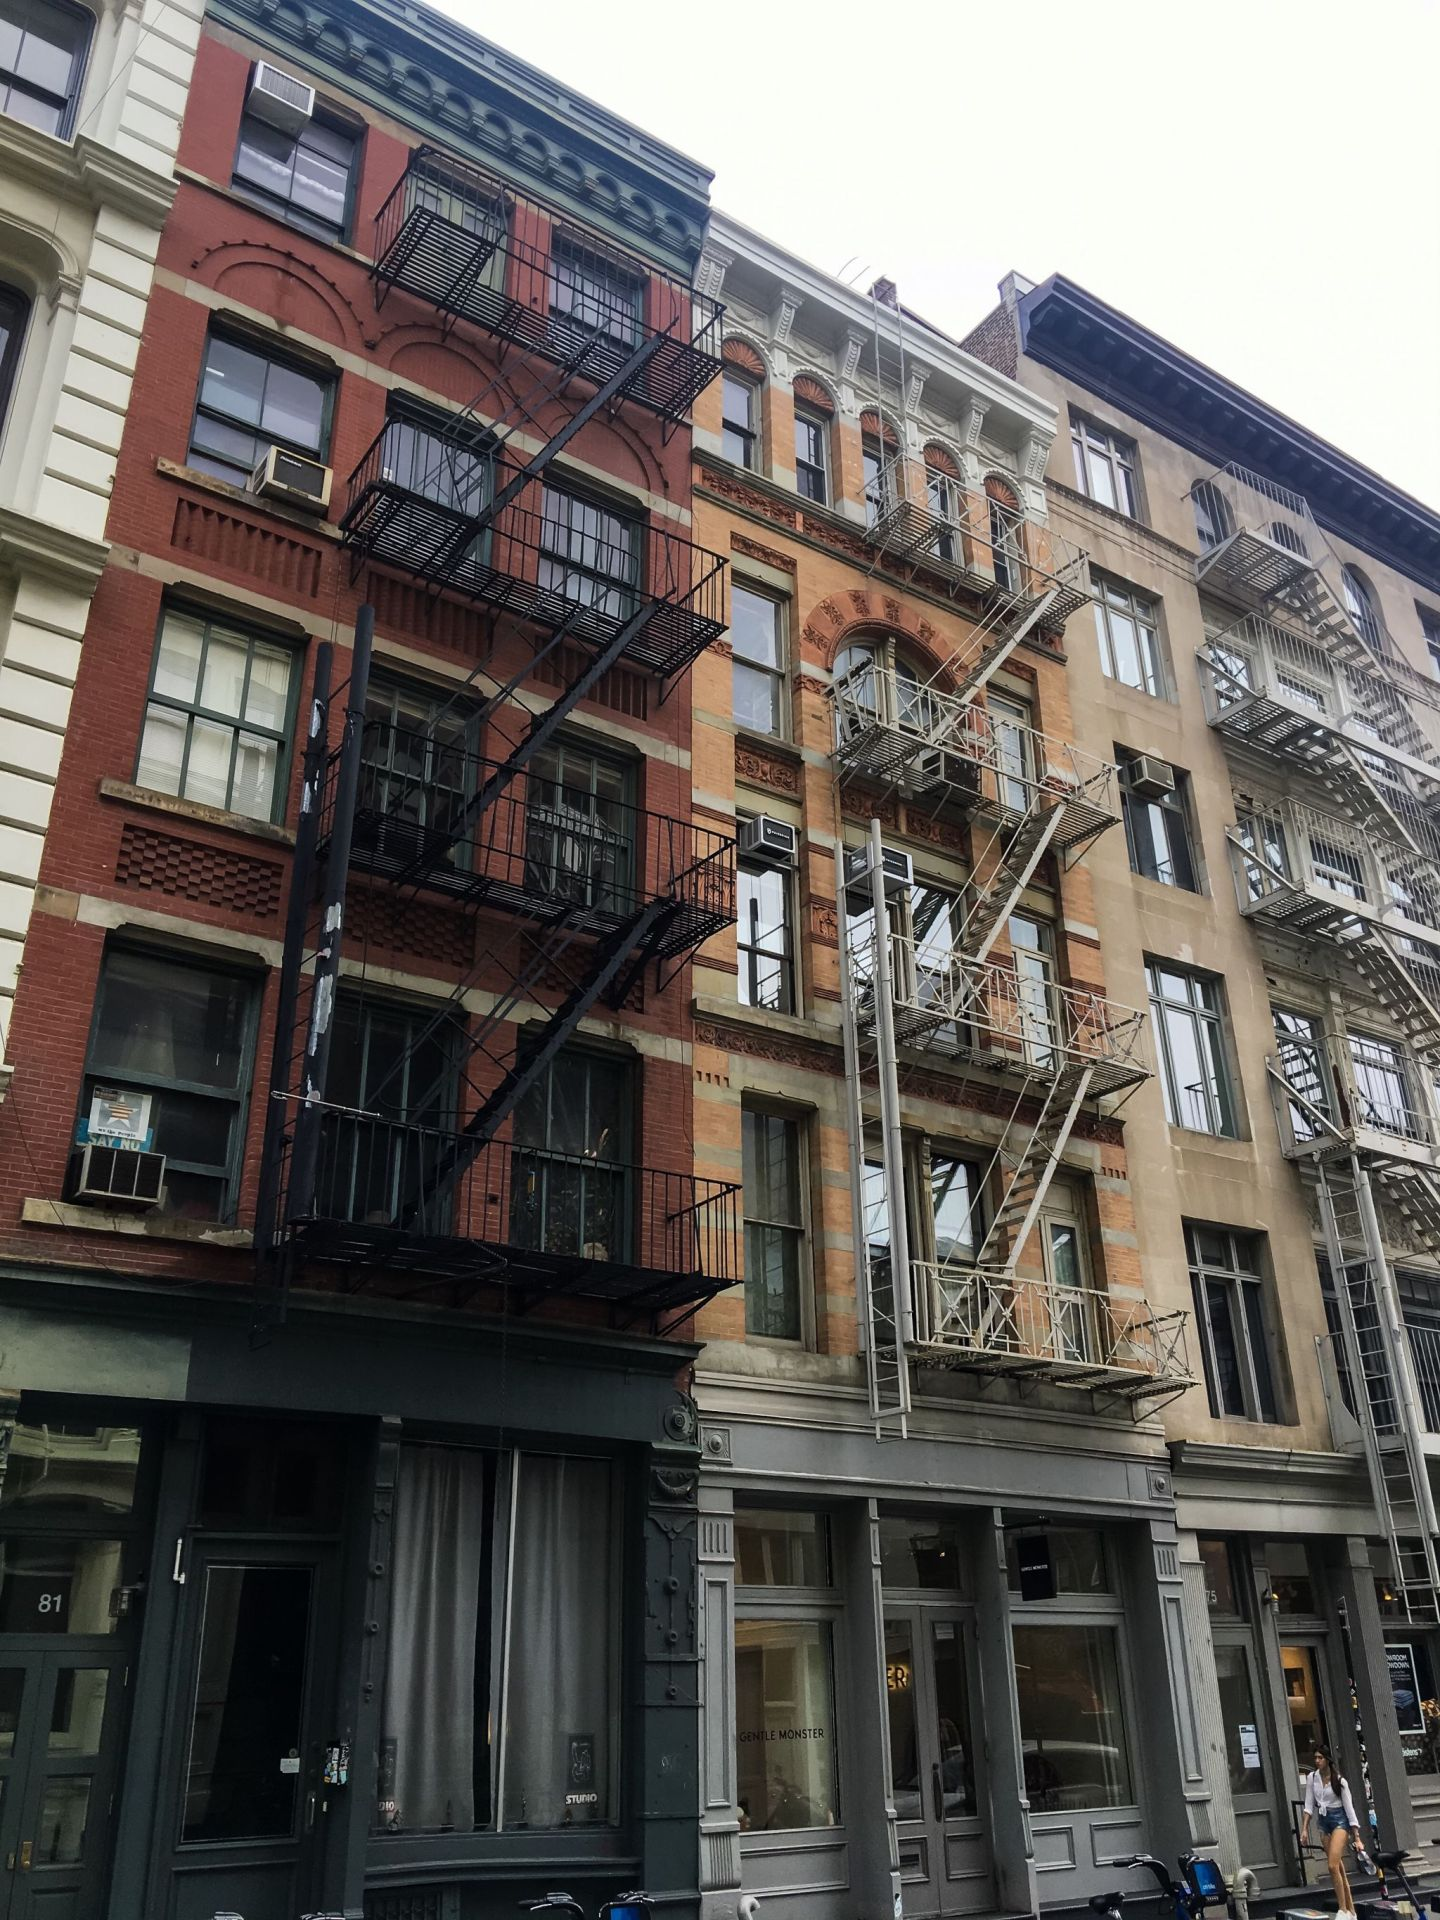 4 Tage in New York City - Häuser in SoHo - Nowshine Reiseblog ü 40